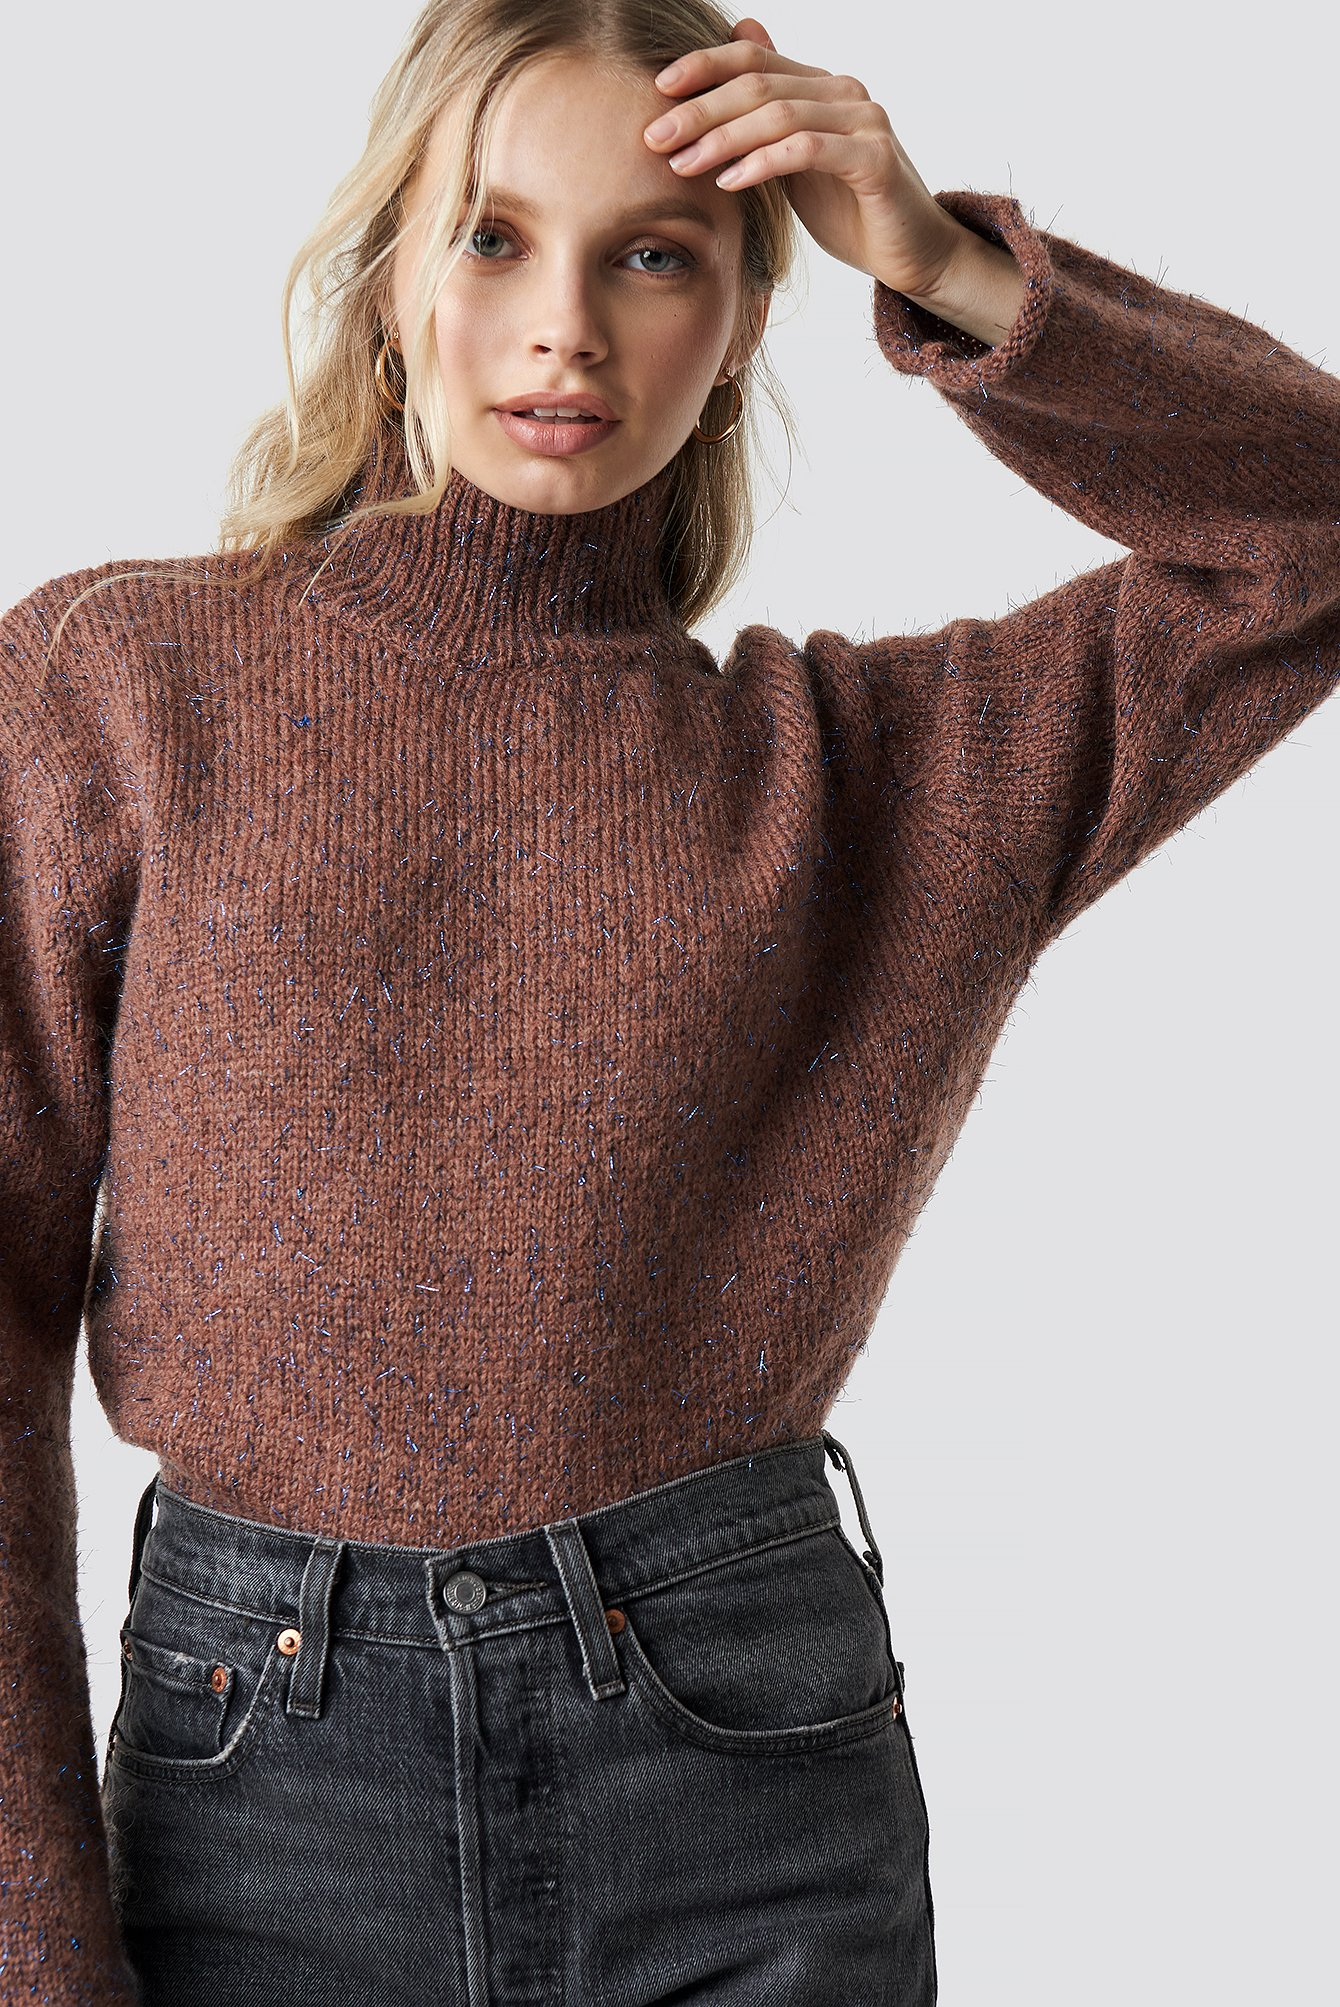 MOVES Yna Jumper - Brown in Pink